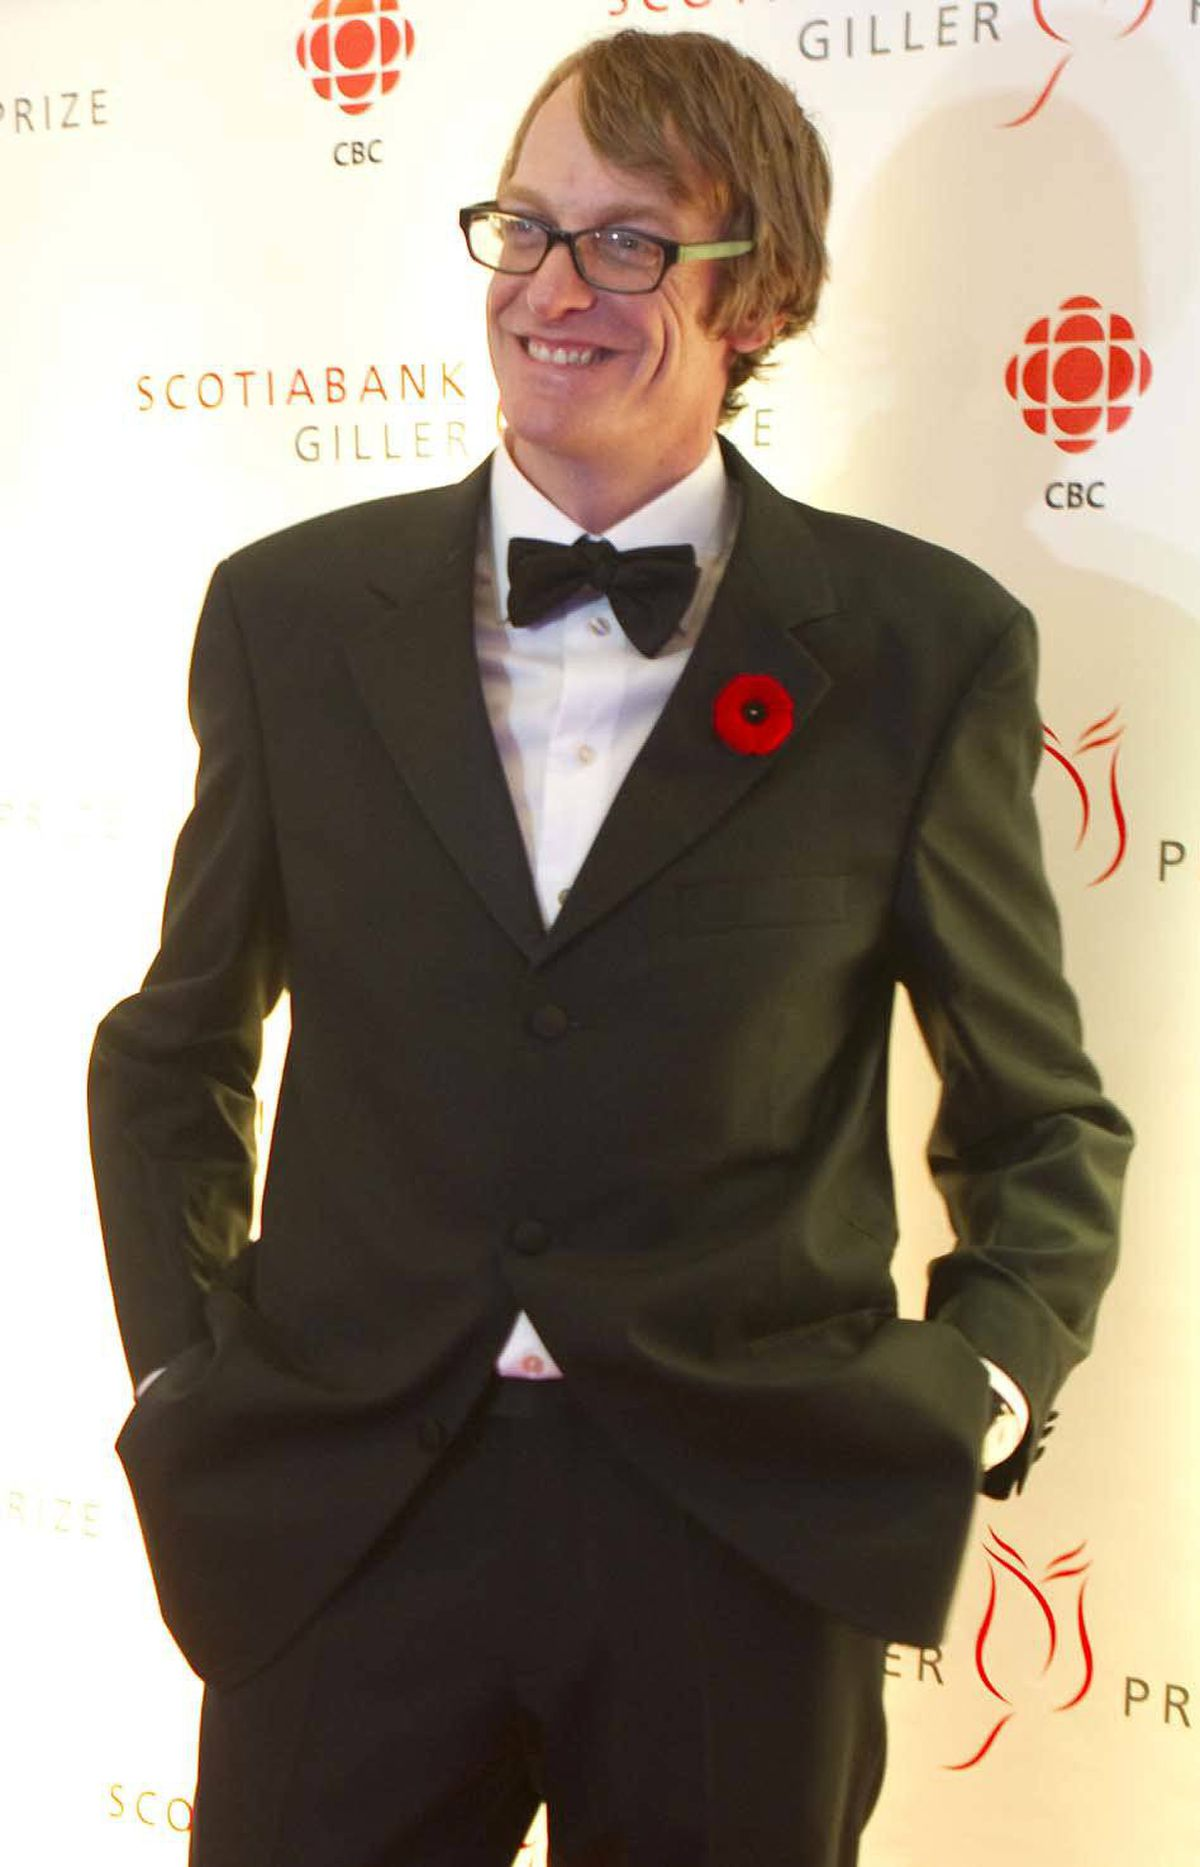 """Patrick deWitt, nominated author of """"The Sisters Brothers"""" and winner of the Writers' Trust Prize for Fiction last week, arrives at the Giller gala."""